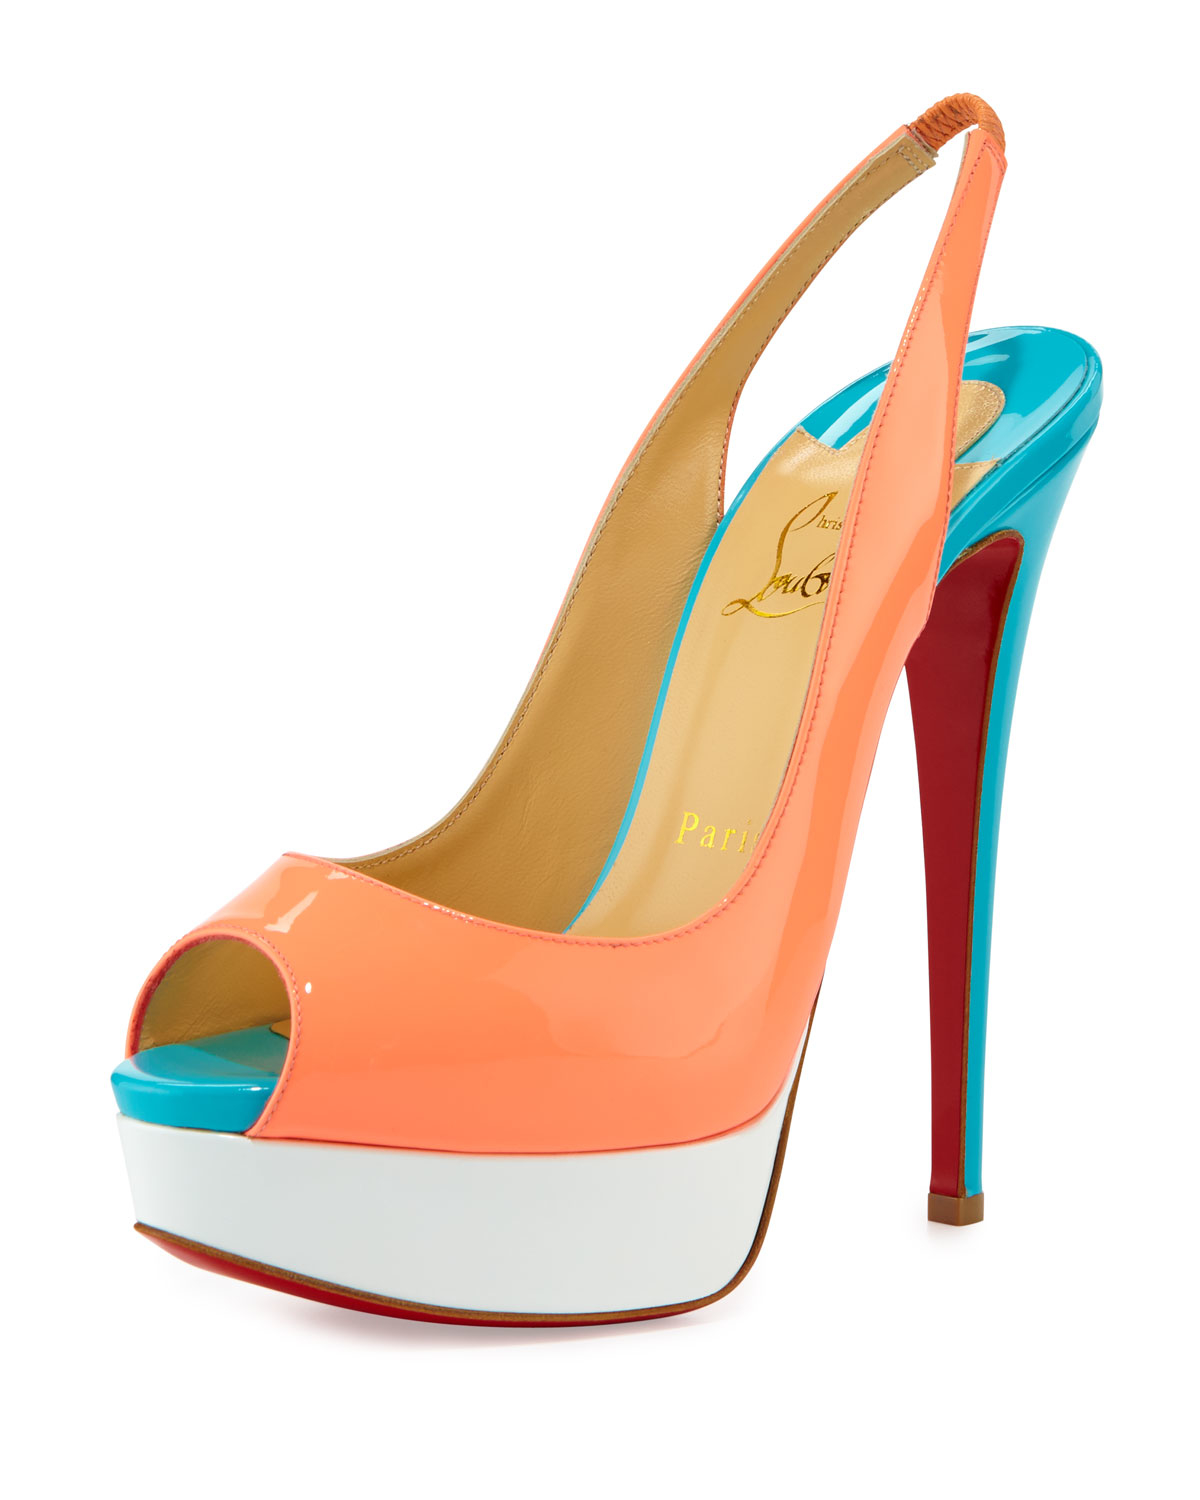 Lyst - Christian Louboutin Lady Color-Blocked Patent-Leather Pumps ... 3222f54eaa